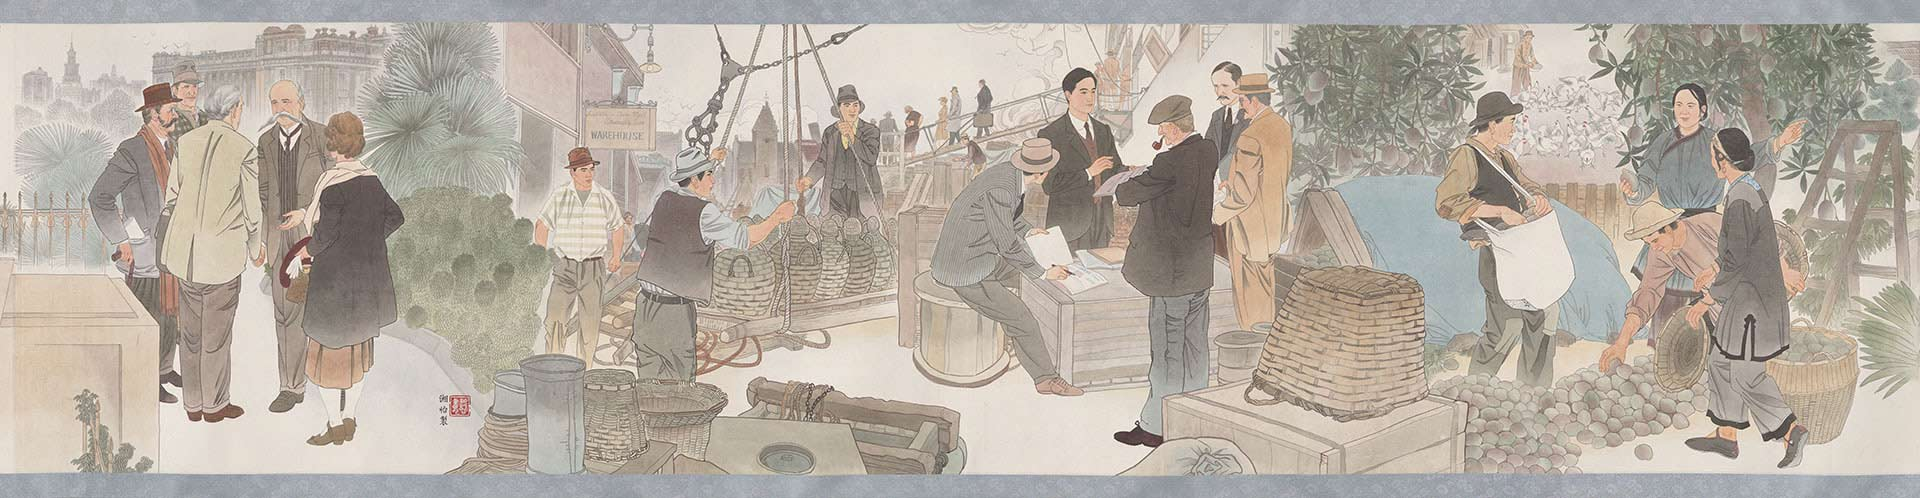 Stitched panels of the Harvest of Endurance scroll featuring 'Entrepreneurs' and 'Politics and racism'.